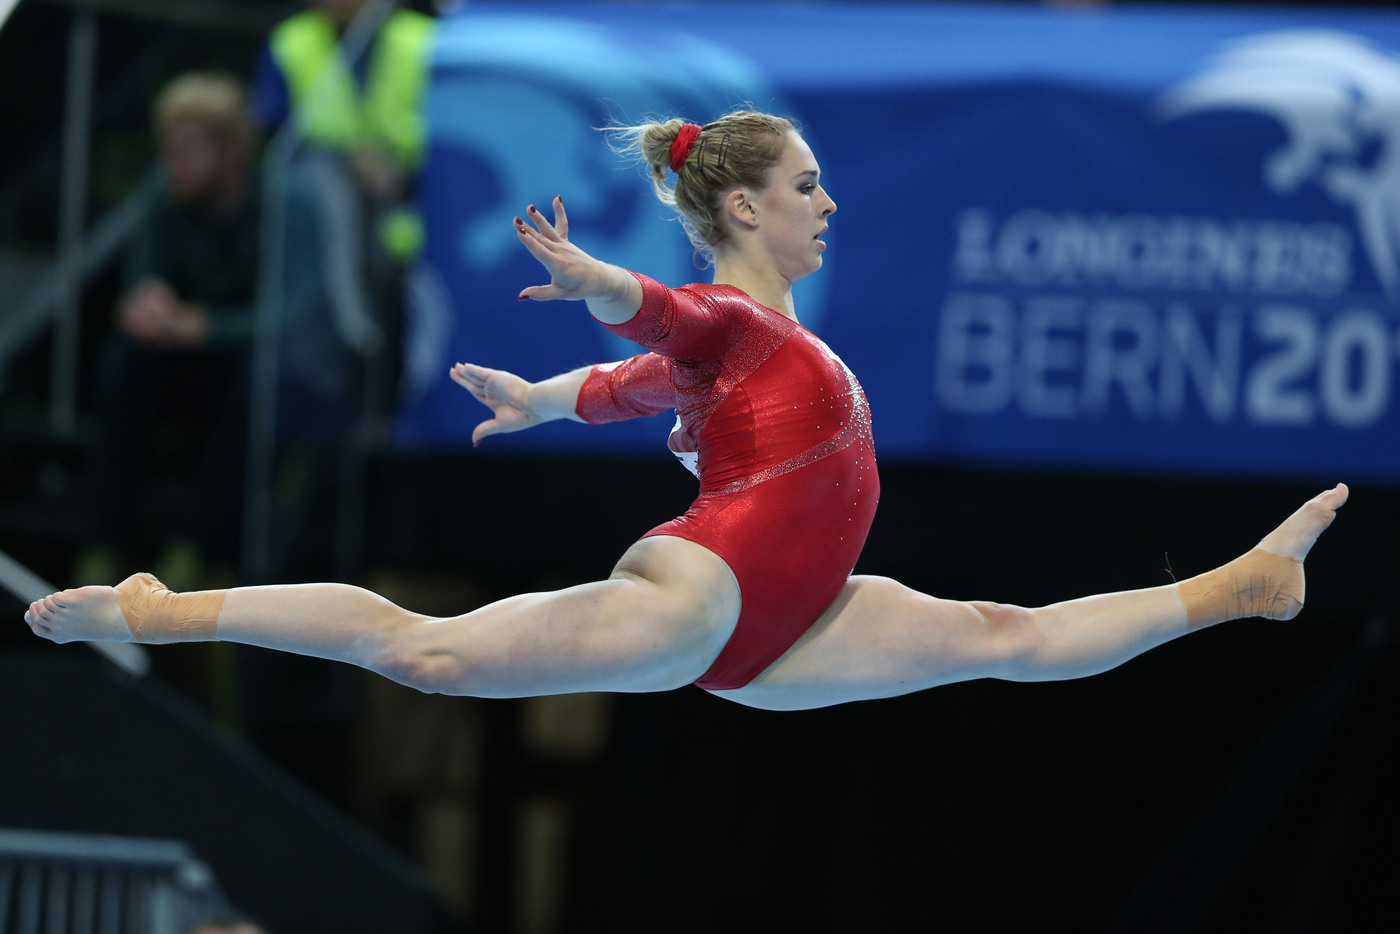 Longines Gymnastics Event: Longines European Men's and Women's Artistic Gymnastics Championships 2016 10